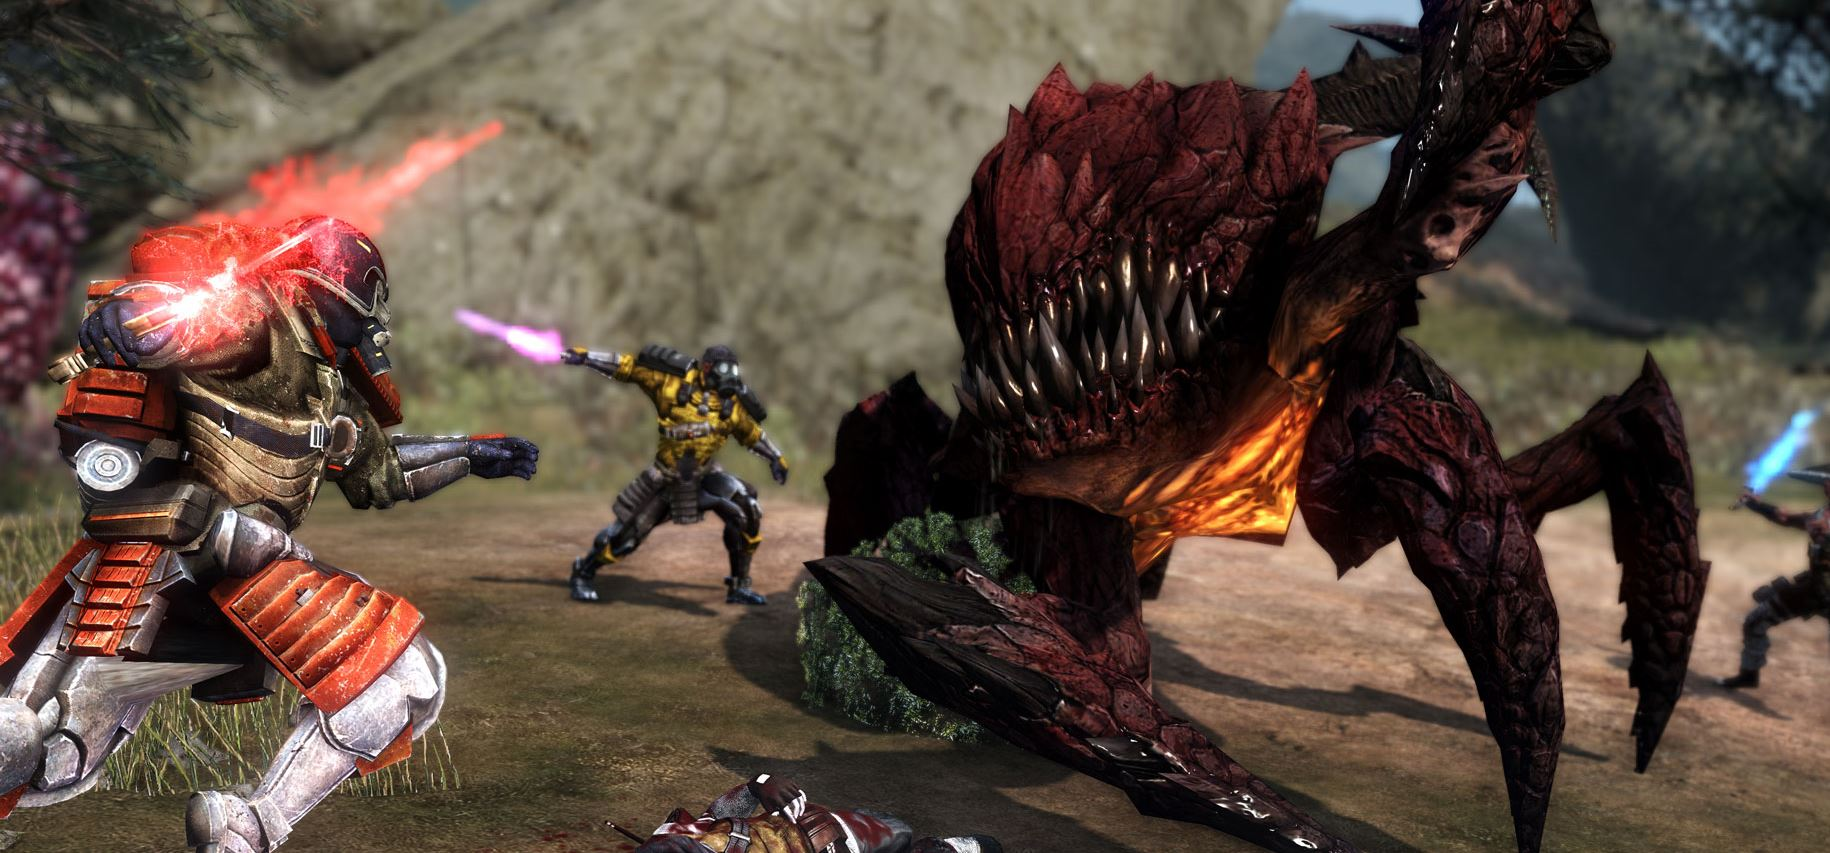 Defiance 2050 MMO-Shooter